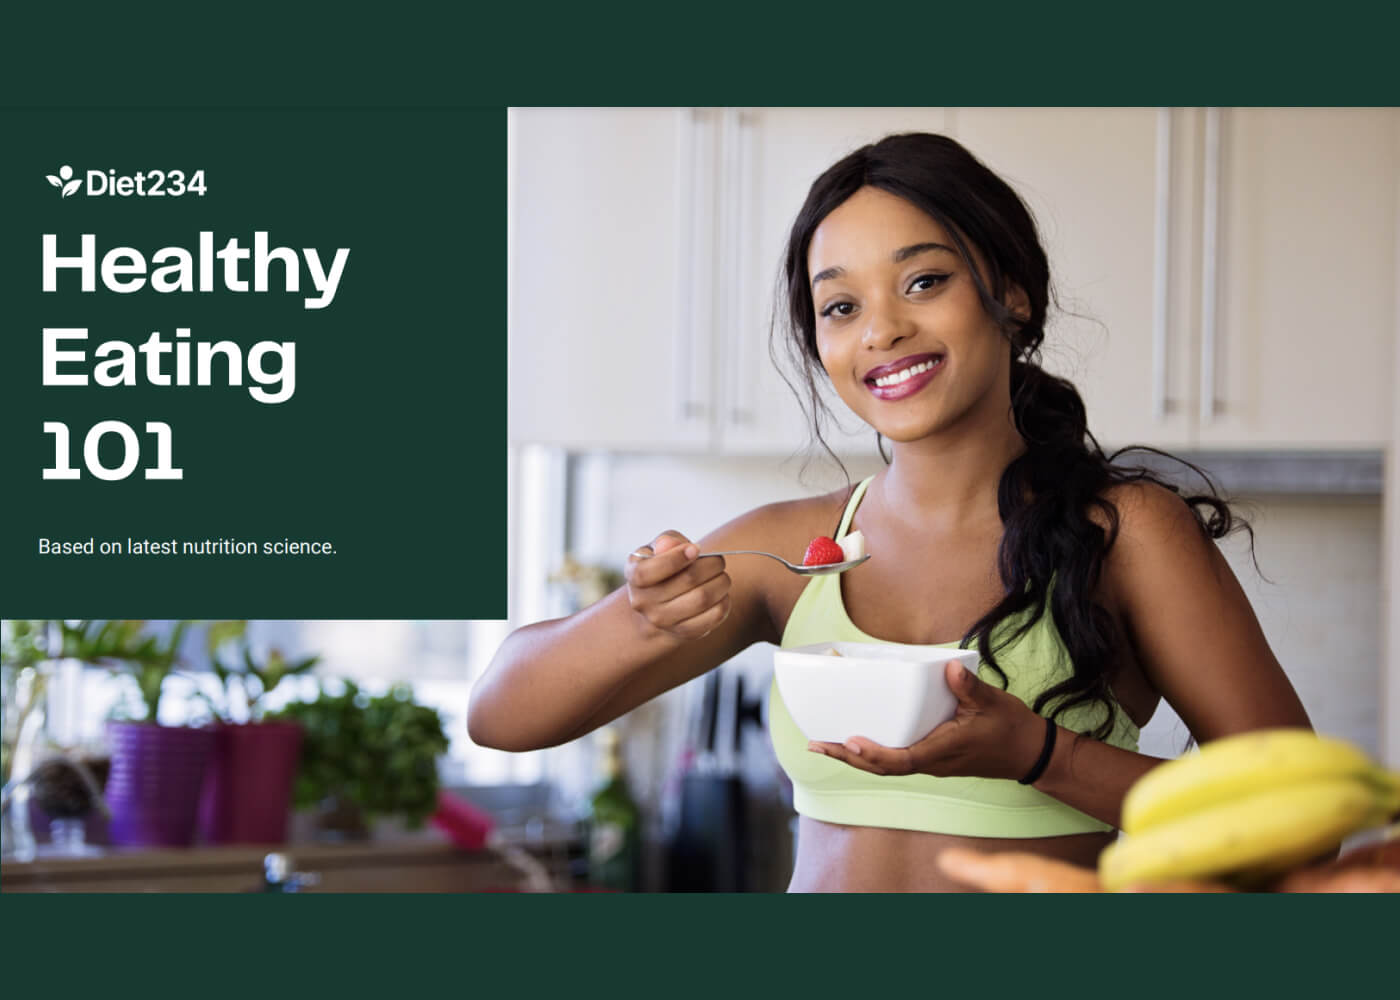 Healthy Eating 101 by Diet234